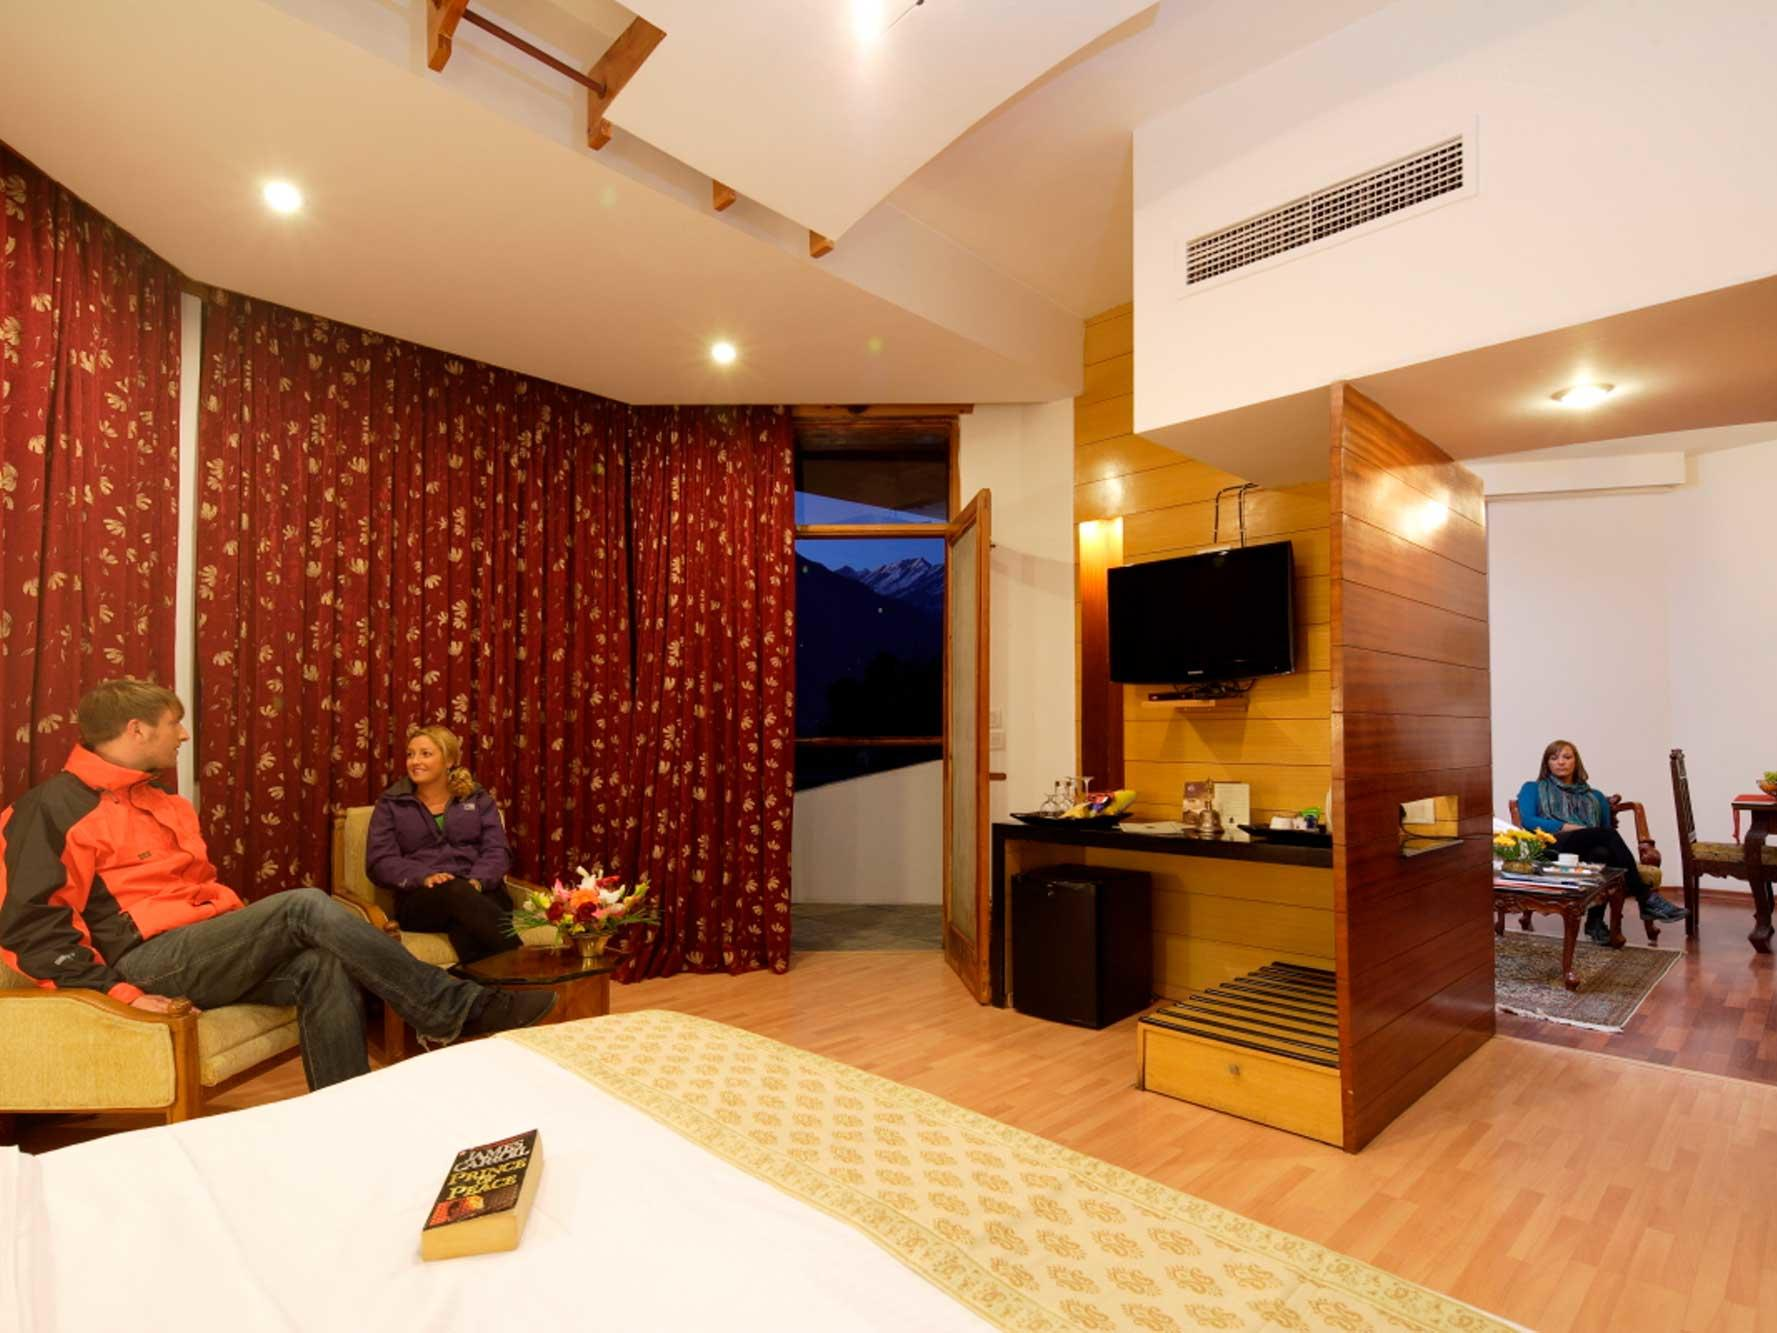 Deluxe Suite at ManuAllaya Resort Spa Manali in Himachal Pradesh, India